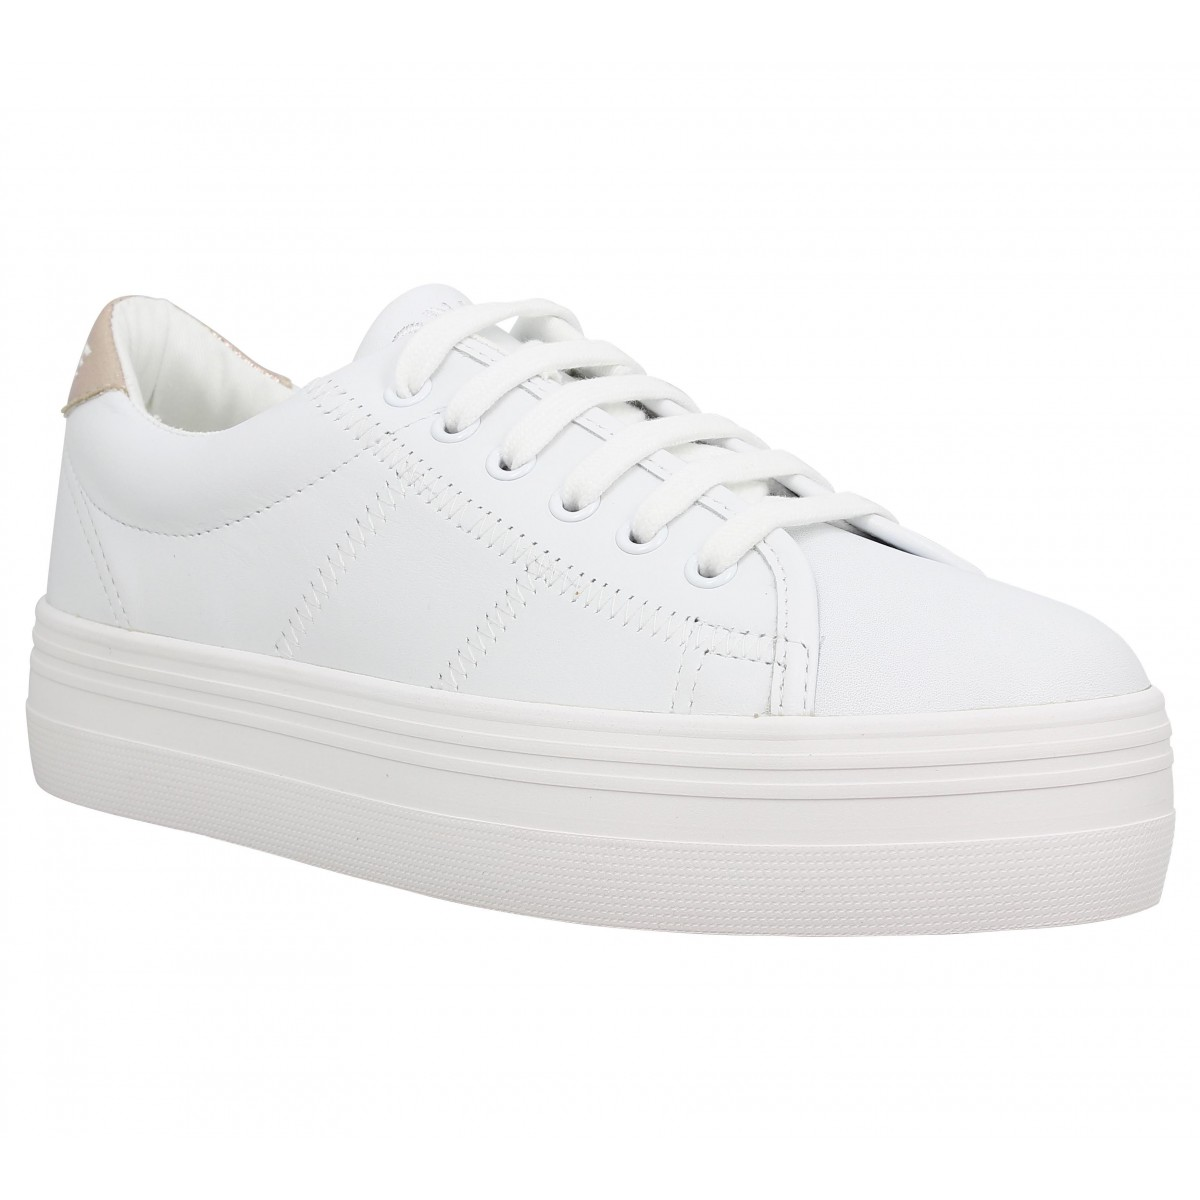 Compensées NO NAME Plato Sneaker cuir Femme White + Gold